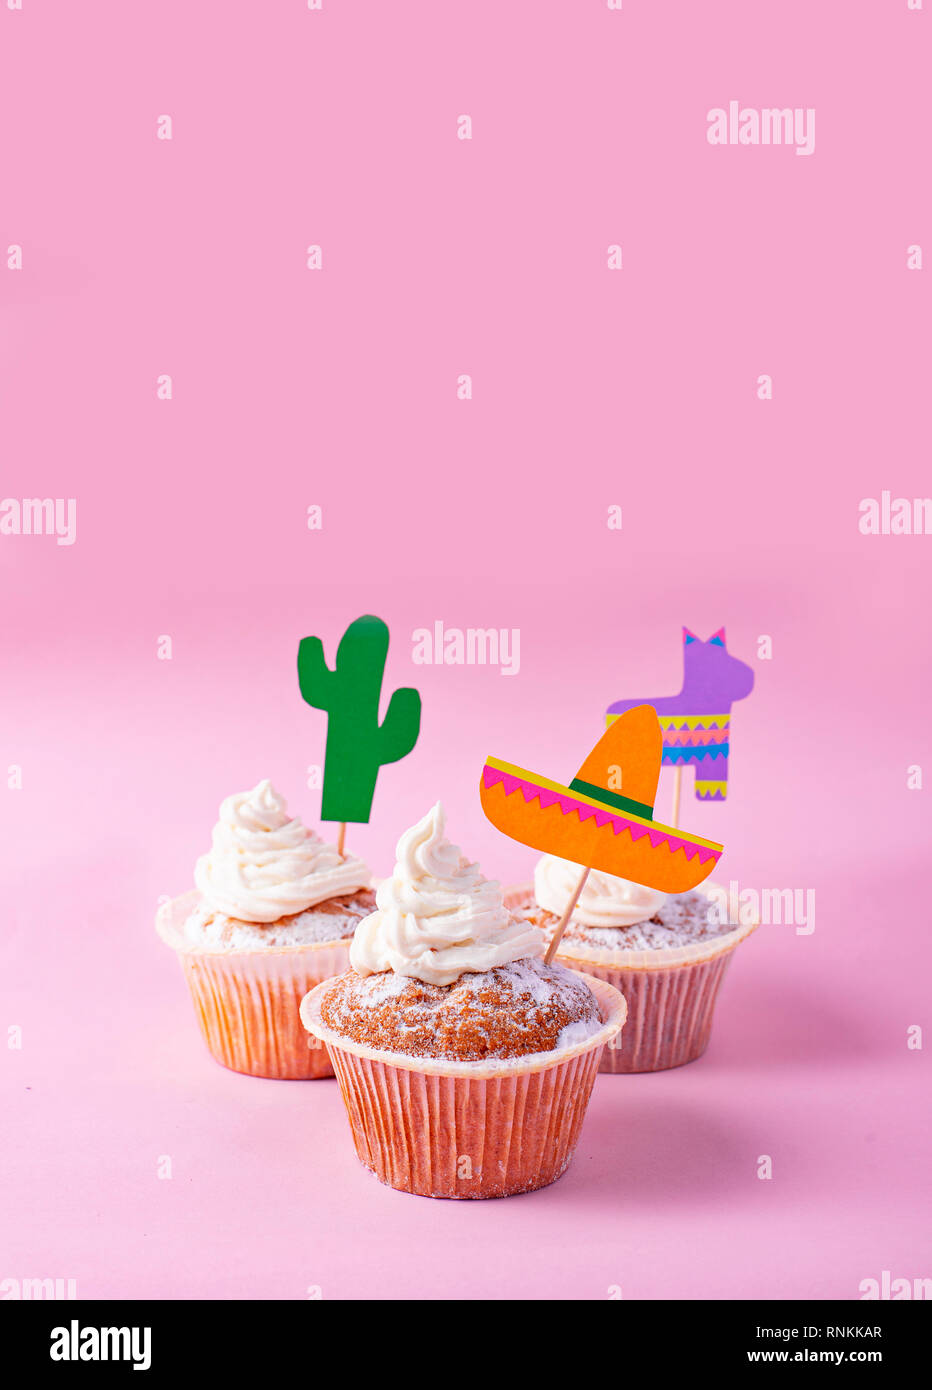 Cupcakes for celebrating Mexican party fiesta - Stock Image